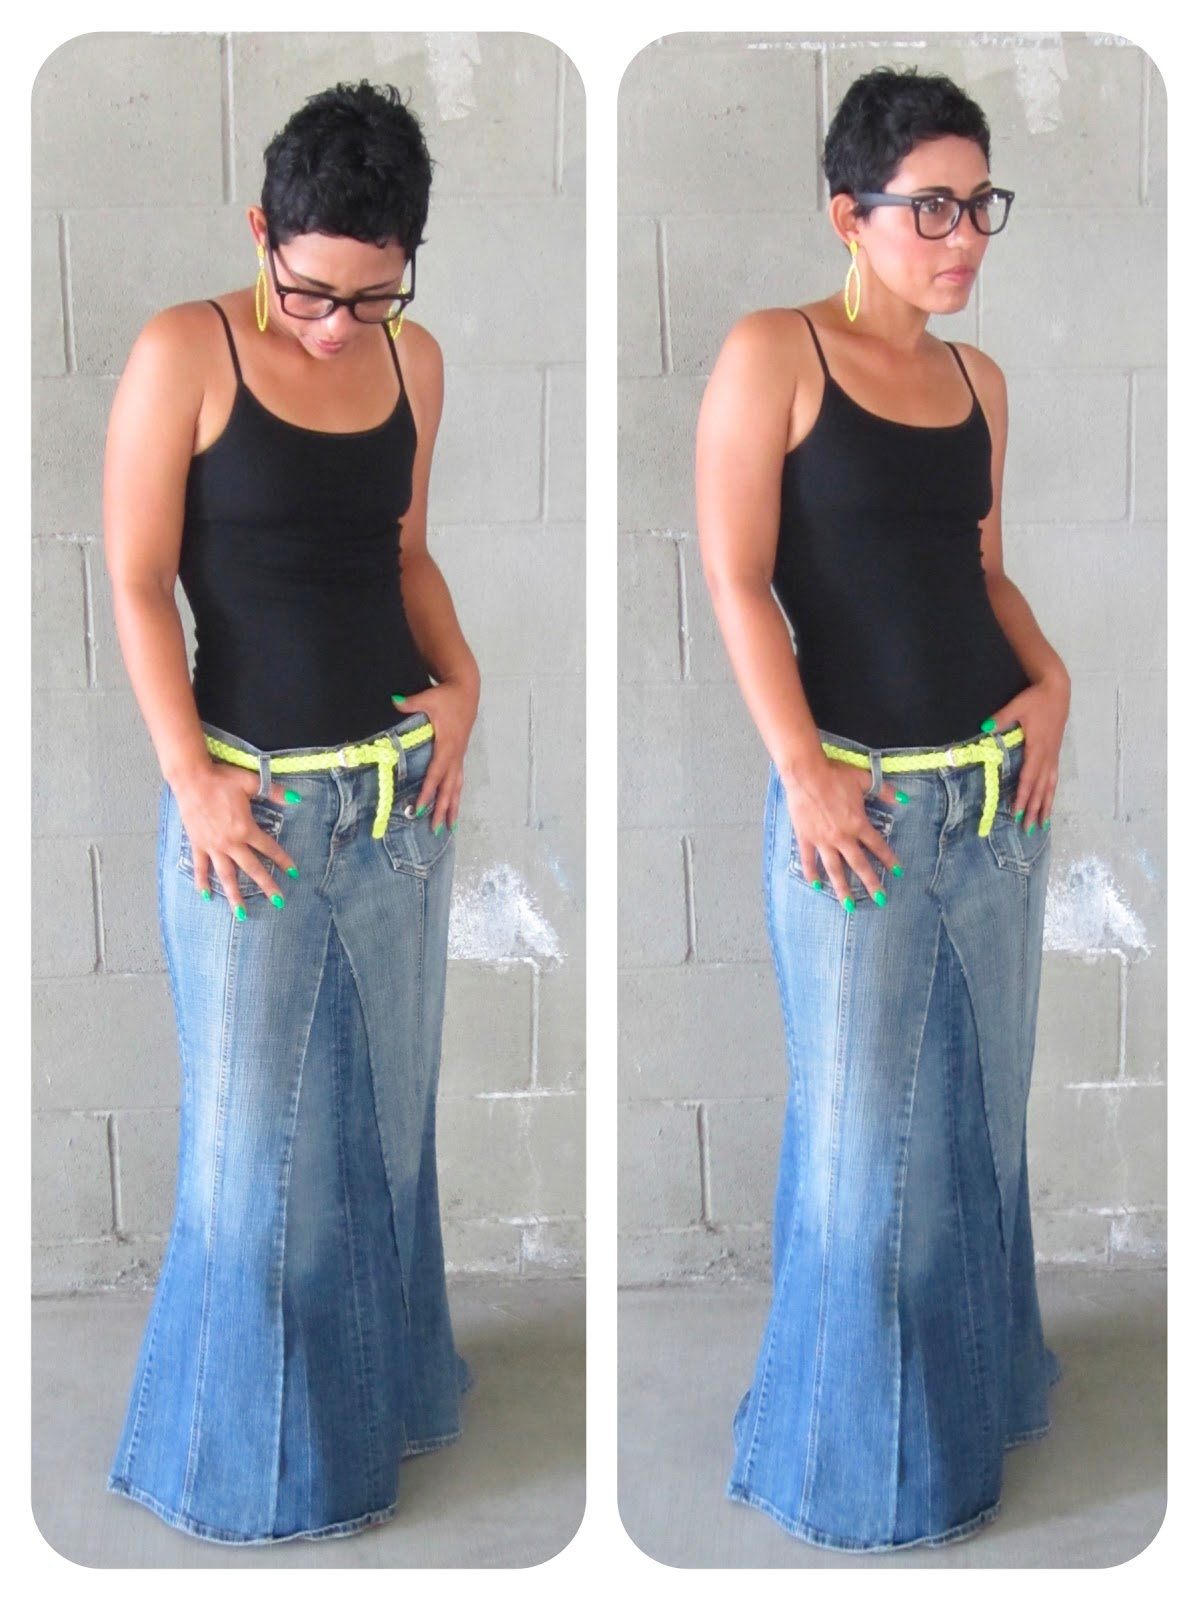 DIY TUTORIAL!!! Reconstructed Jeans to Fabulous Maxi! |Fashion Lifestyle and DIY